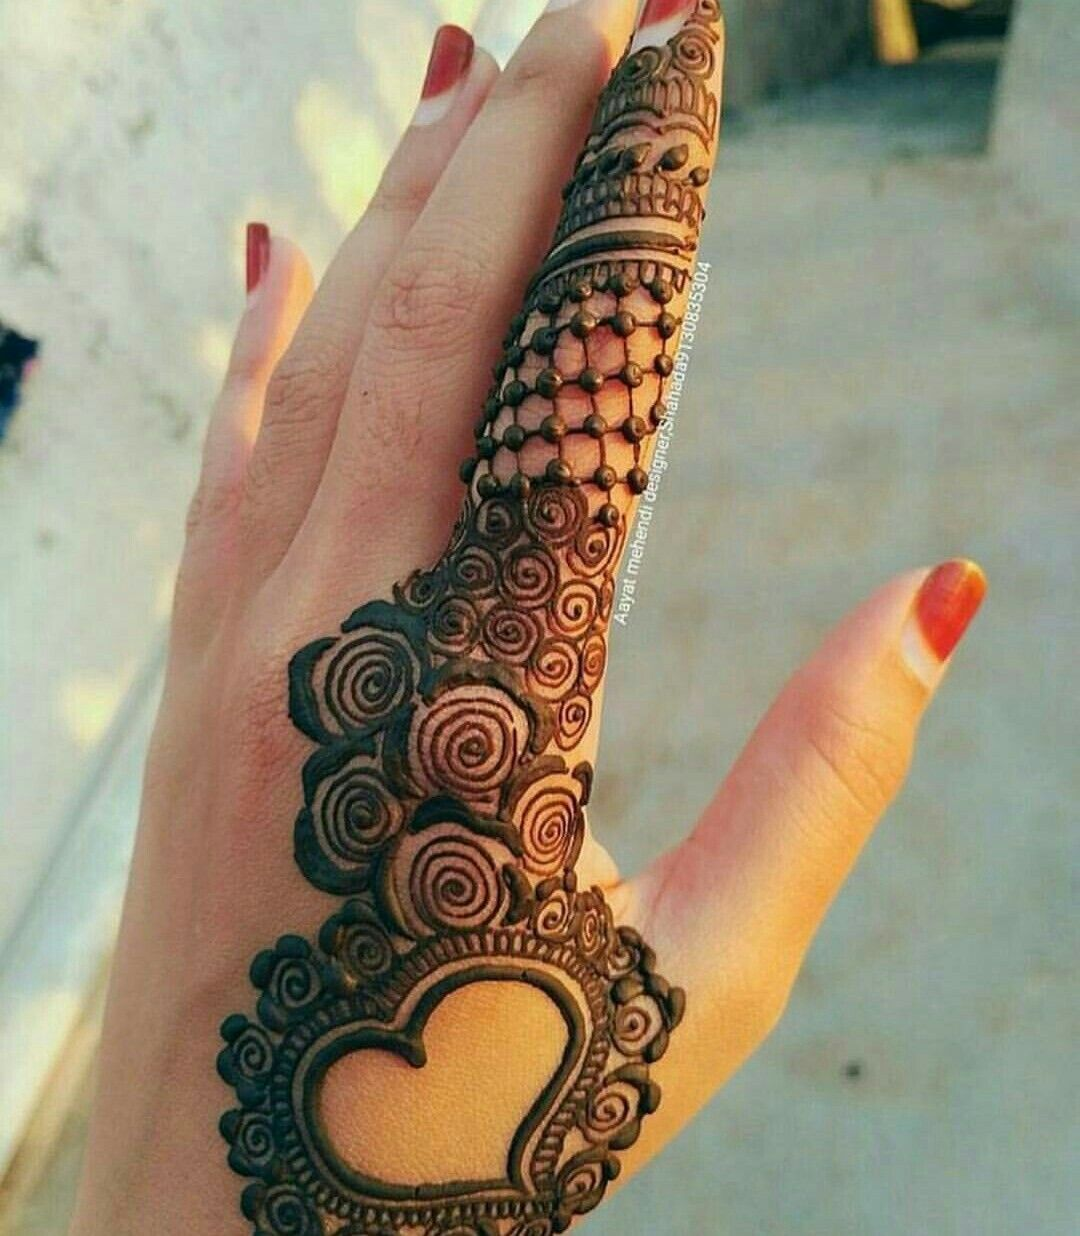 Heart Henna Tattoos: Mehndi Design Images, Mehndi Designs